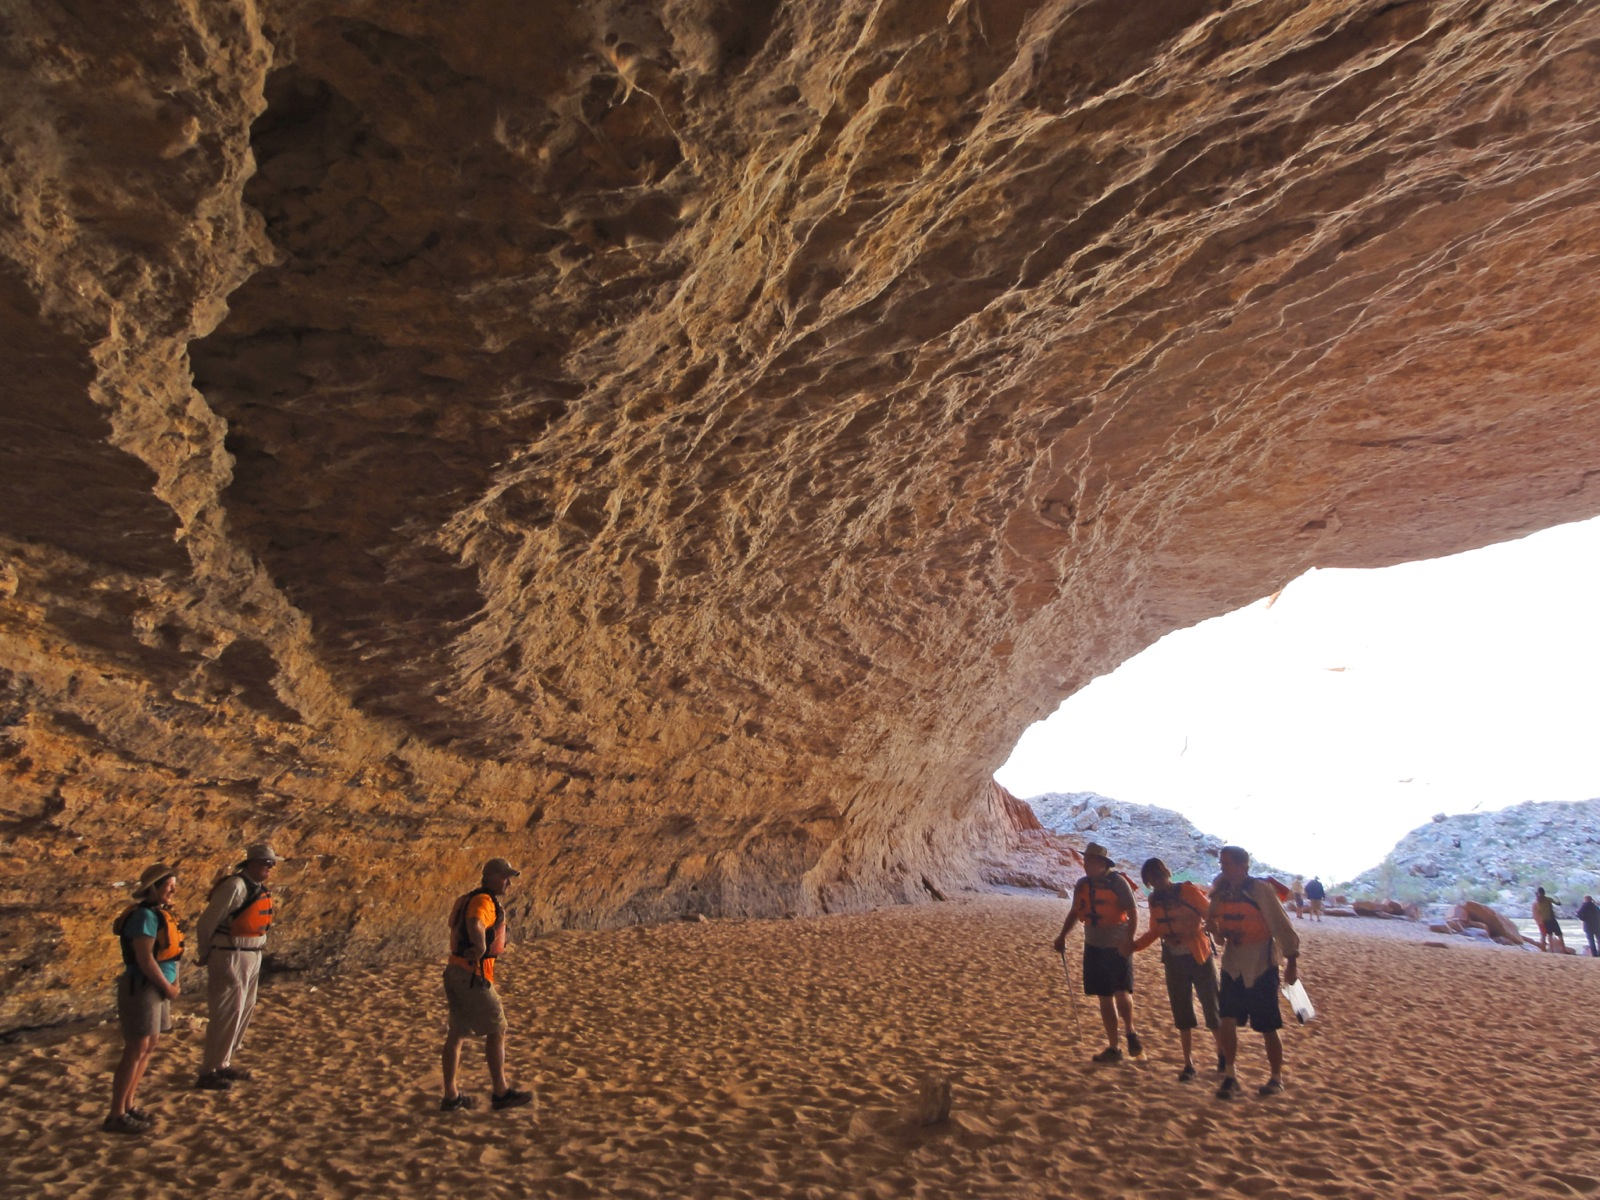 Several participants are dwarfed by the massive walls and ceiling of a cave on the edge of the Colorado River.